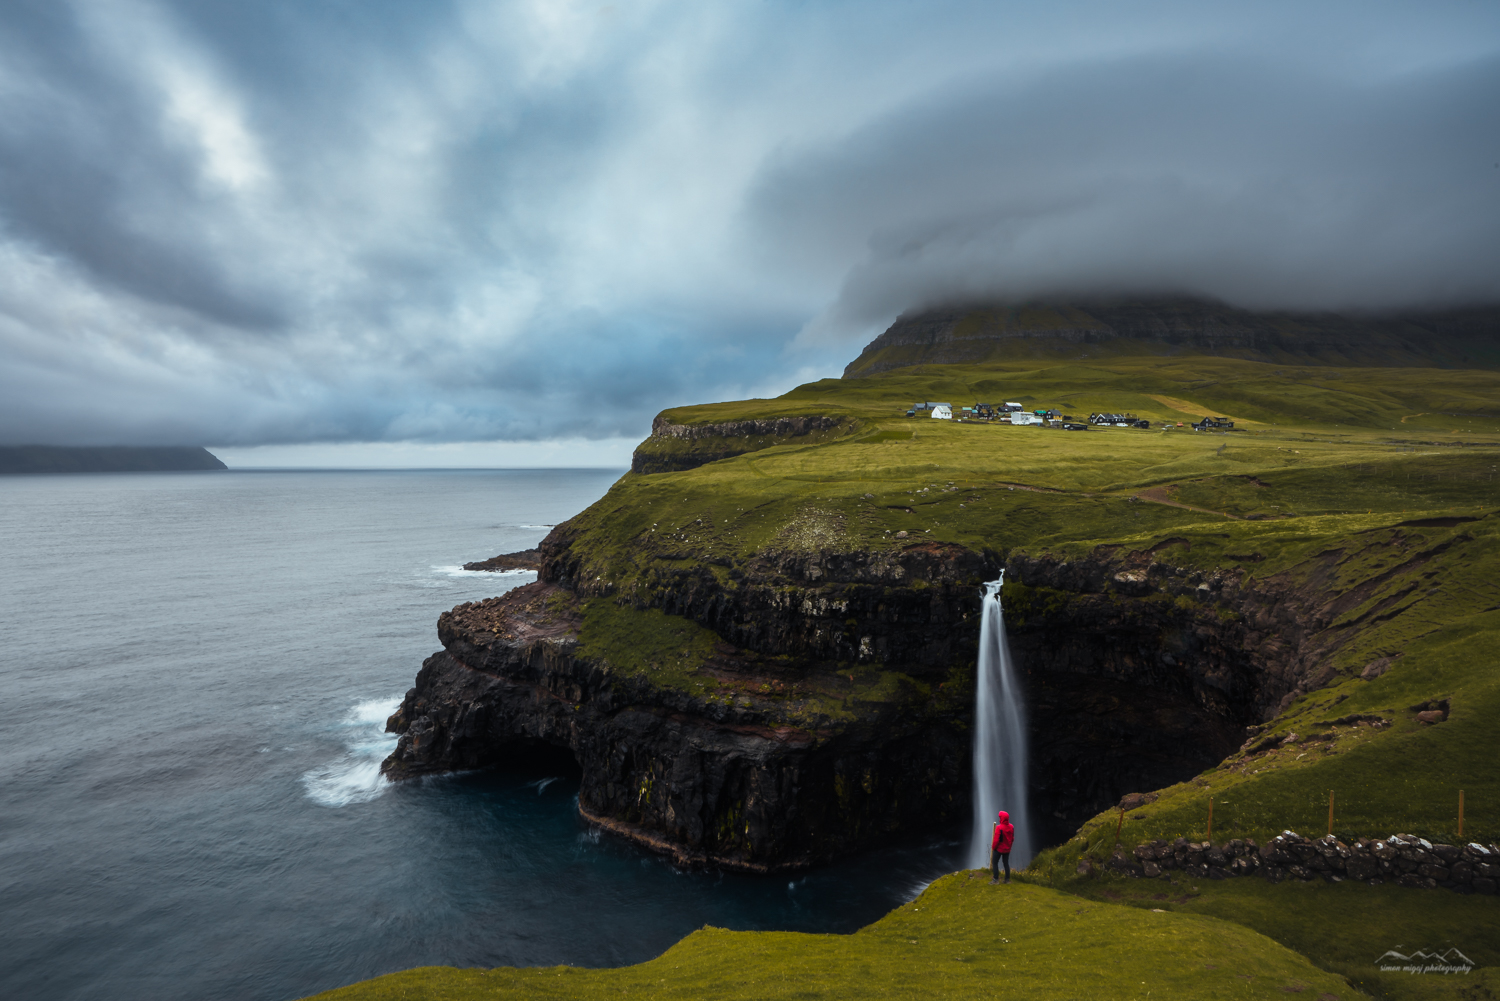 Man standing in front of Mulafossur Waterfall (Vagar Island), Faroe Islands